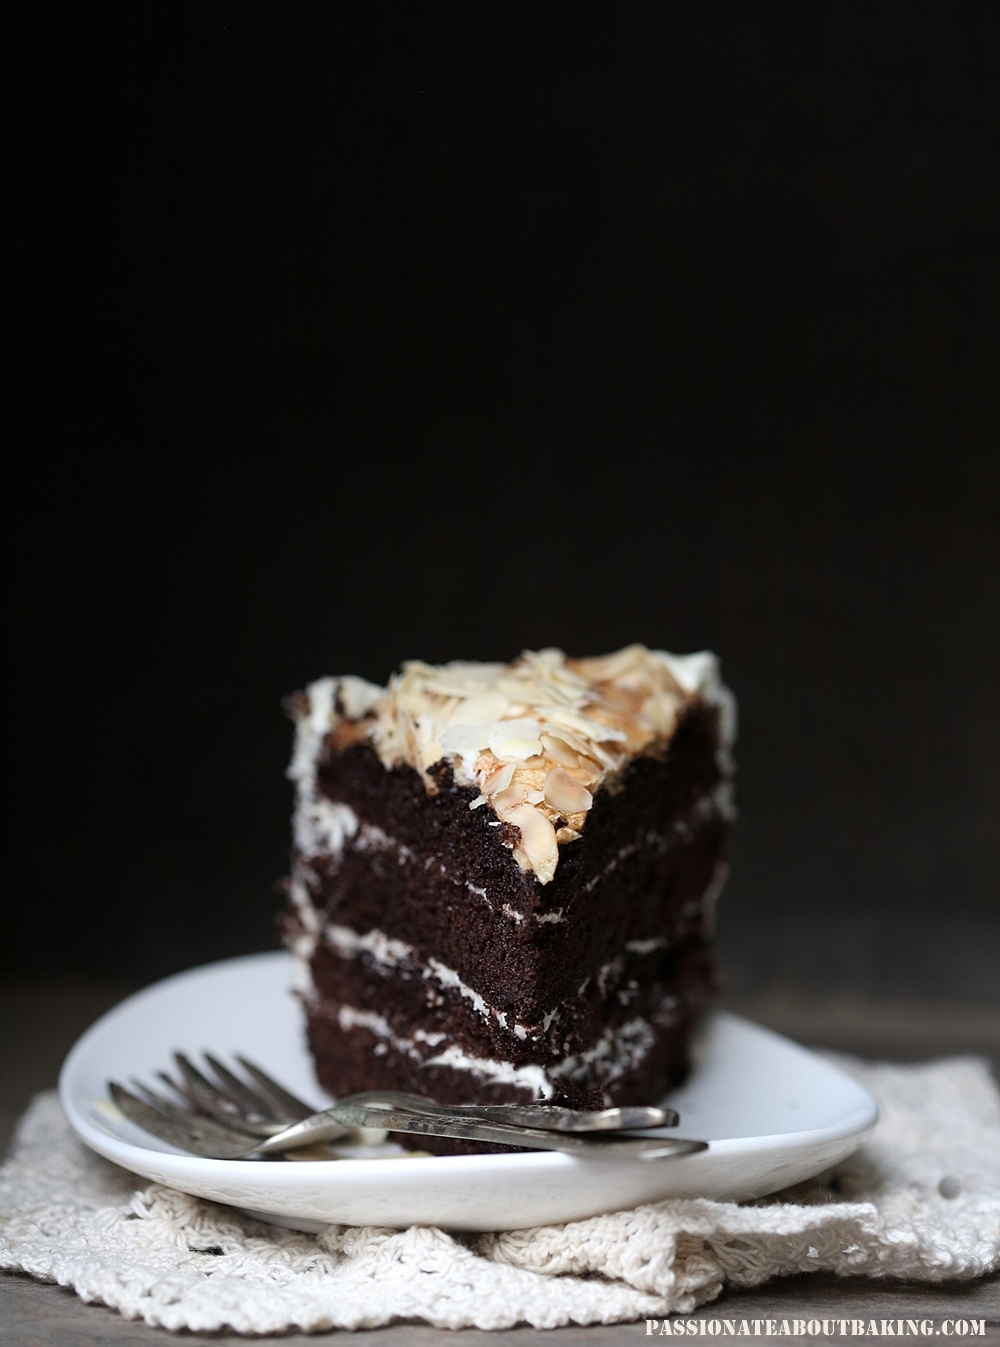 Dark Chocolate Layered Cake with Almond Meringue Topping